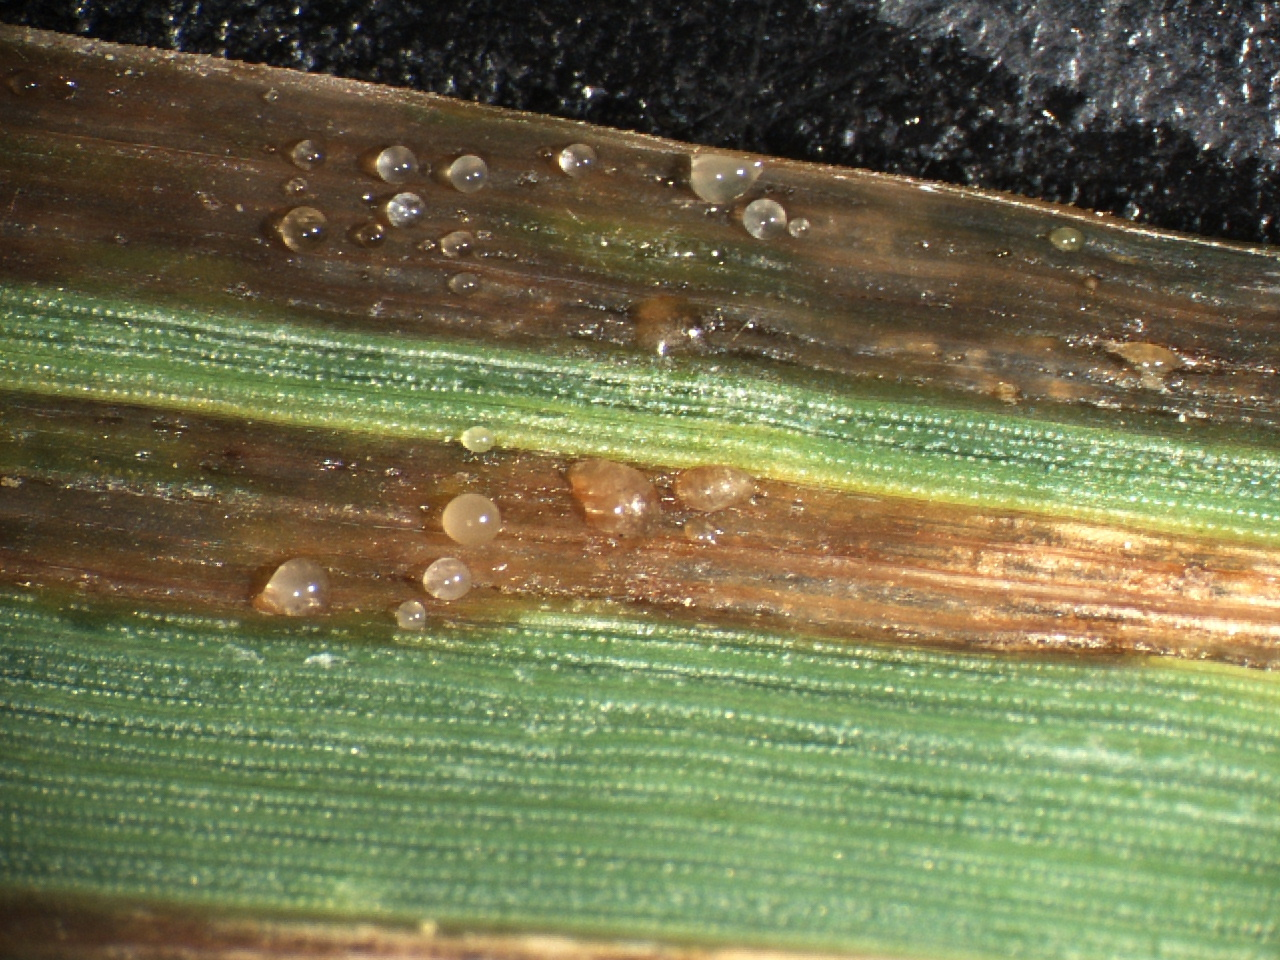 Bacterial leaf blight lesions with bacterial exudate.